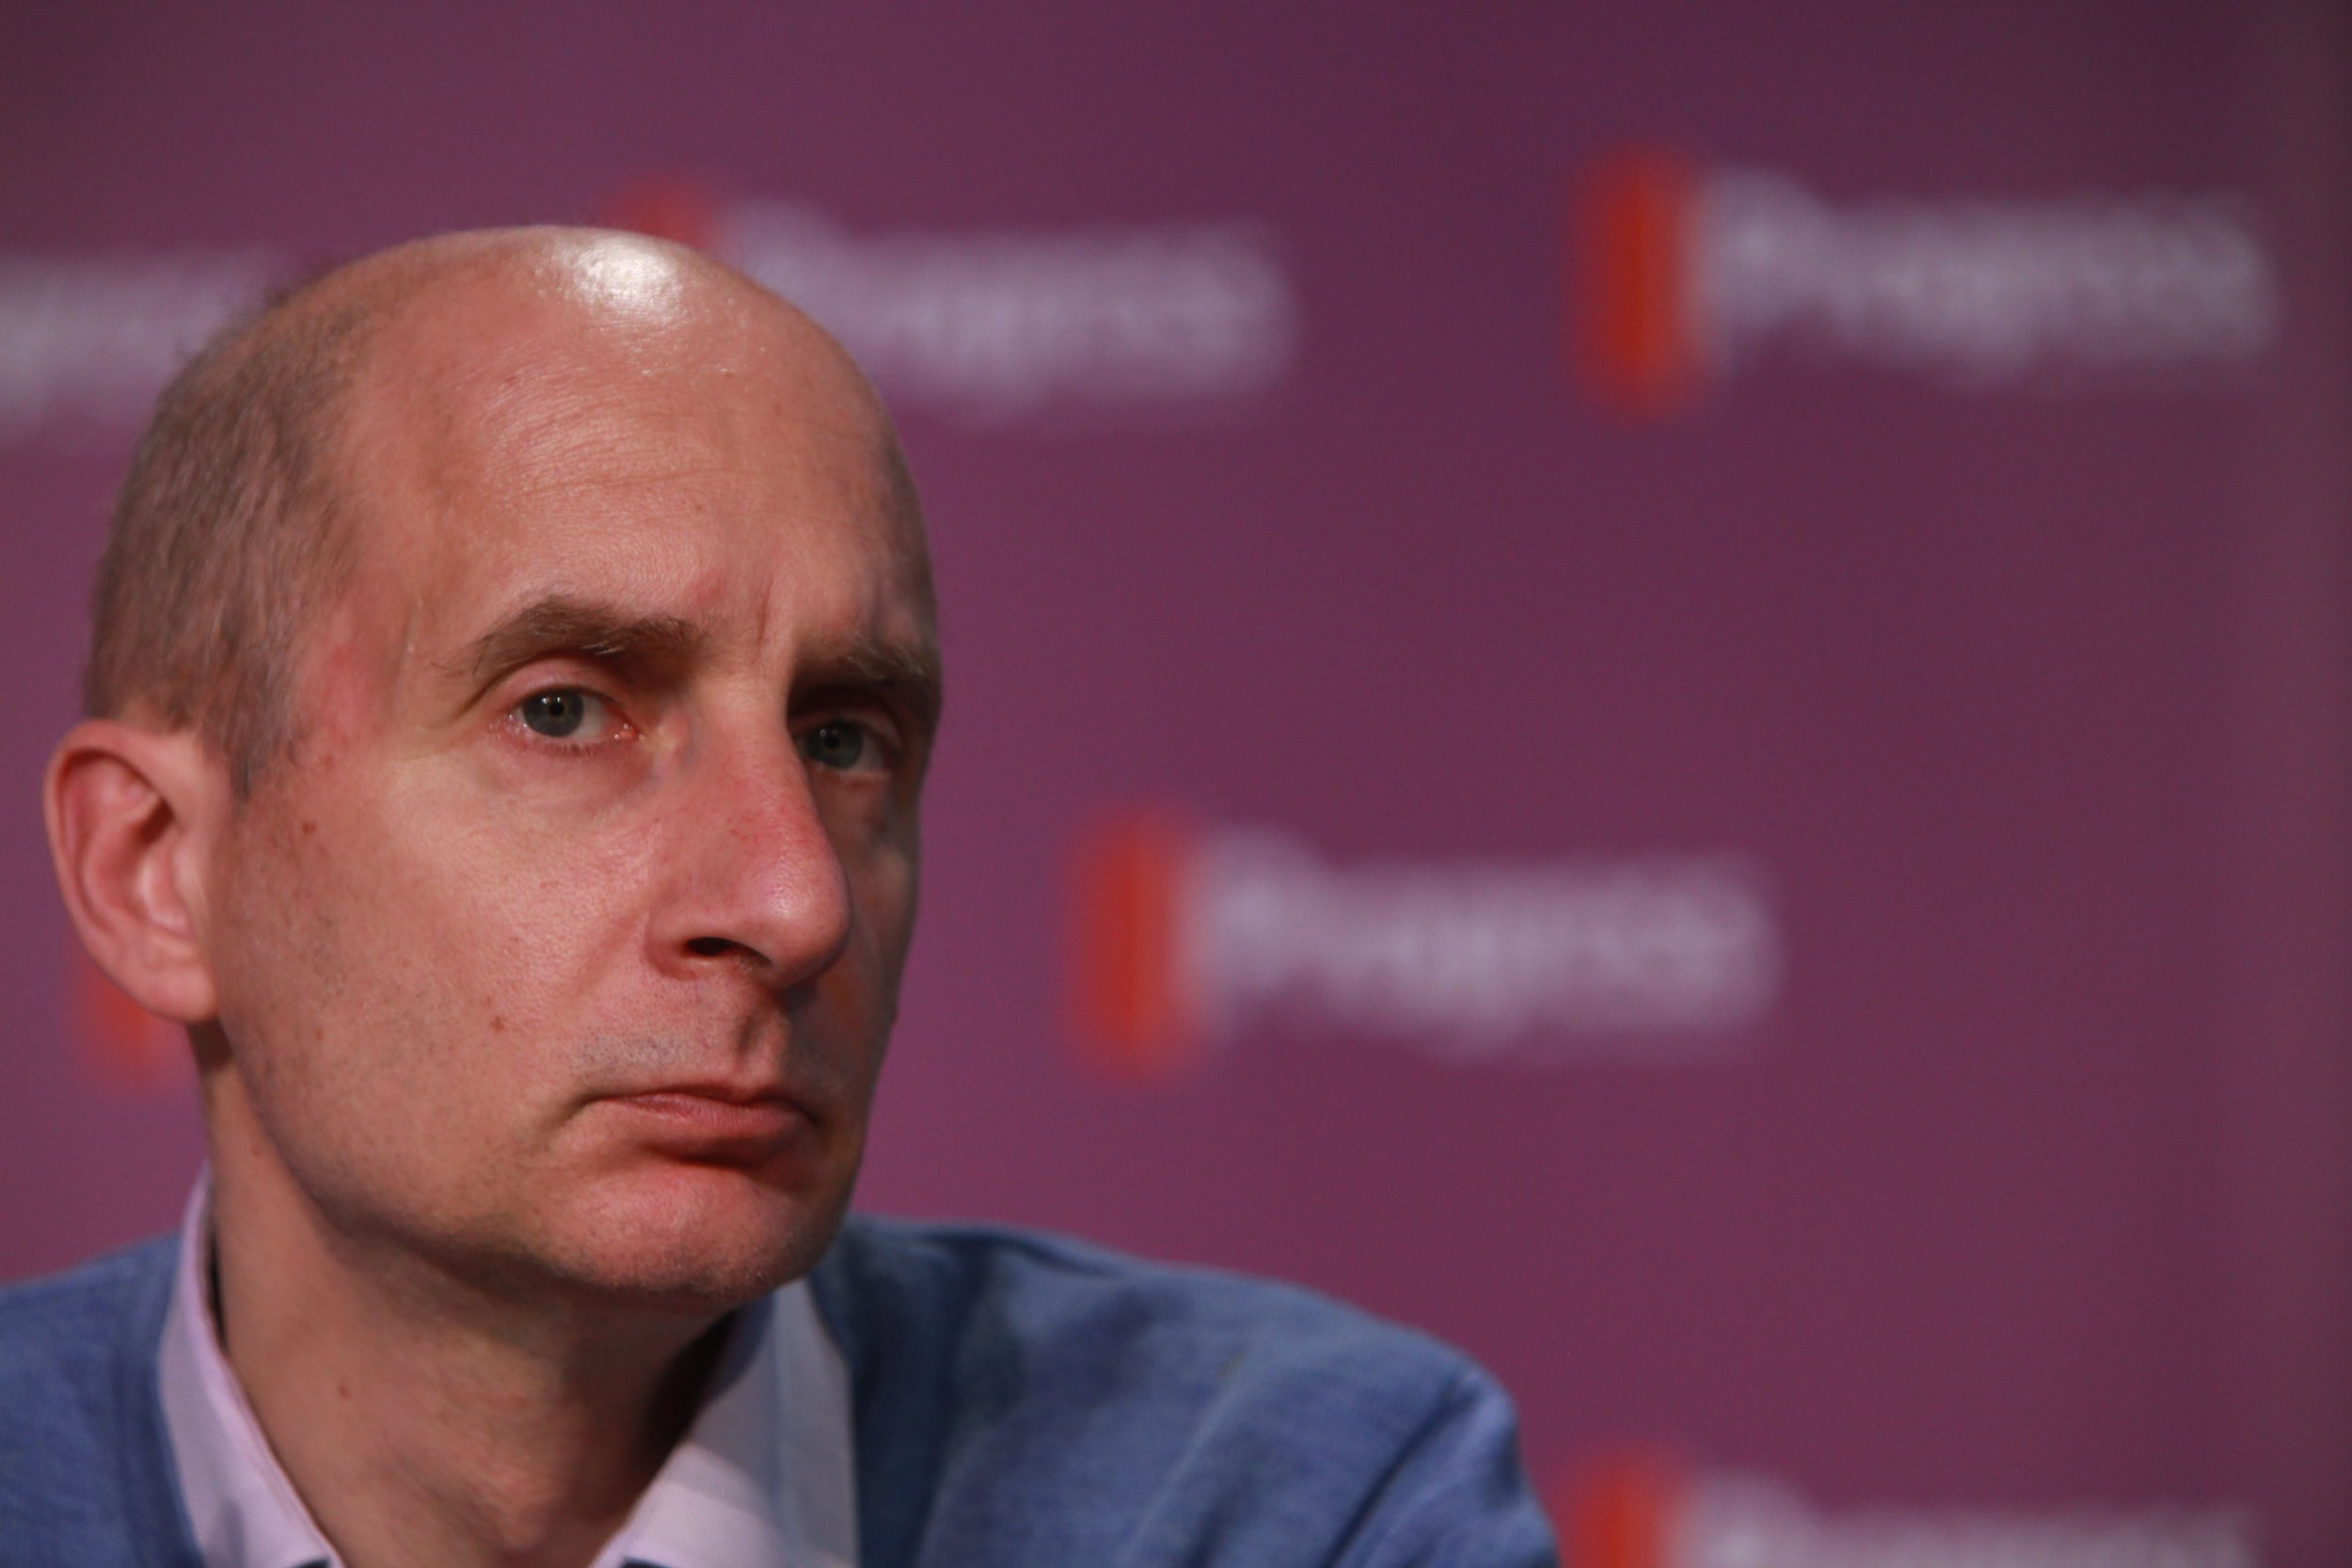 Who is Lord Adonis? Read his resignation letter in full